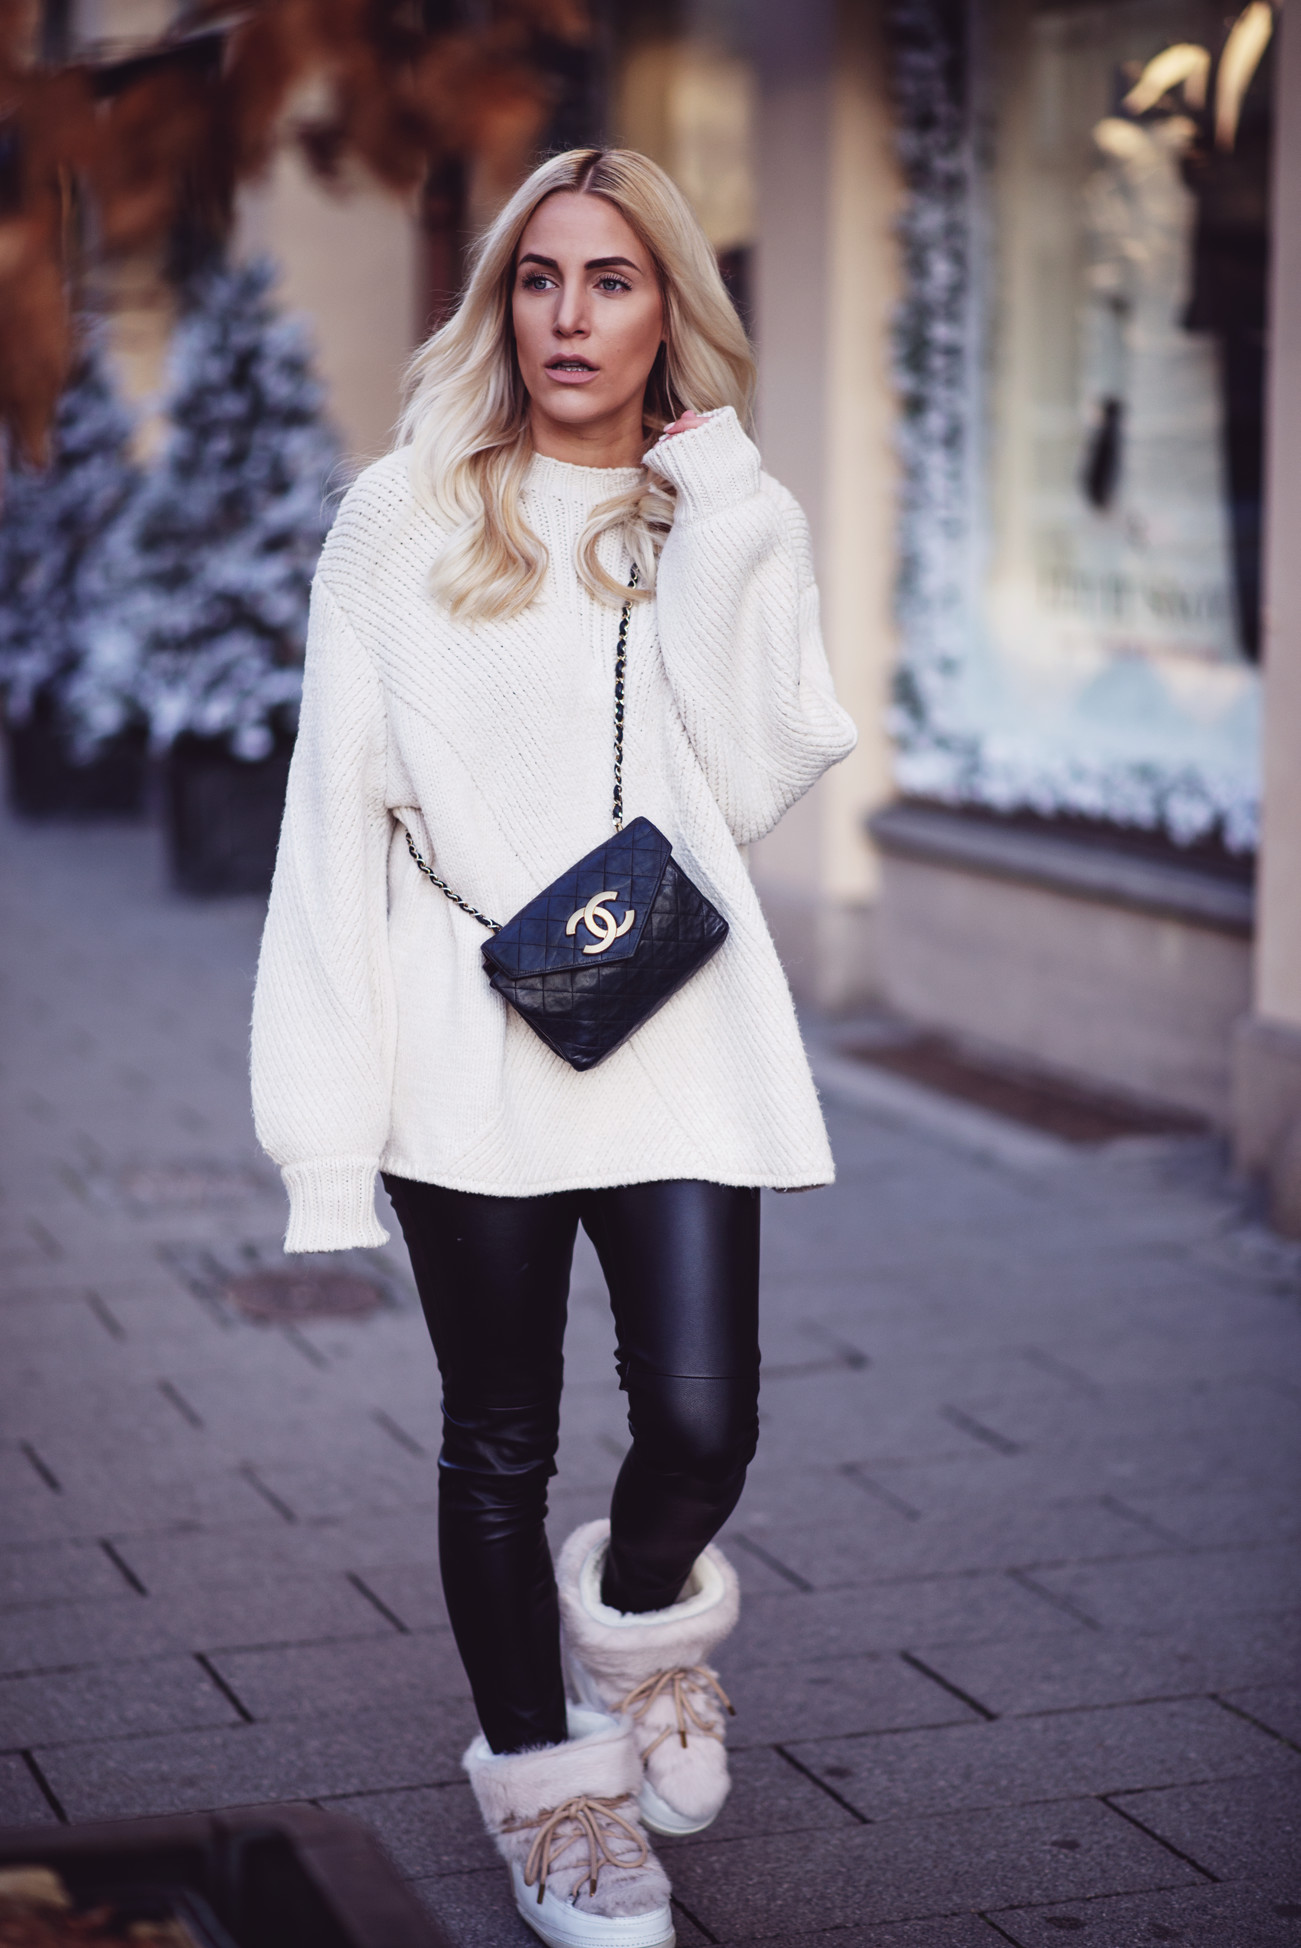 fashion-fashionblogger-blogger-chanel-winter-cozy-knitwear-leo-sequinsophia-6-dsc_6260